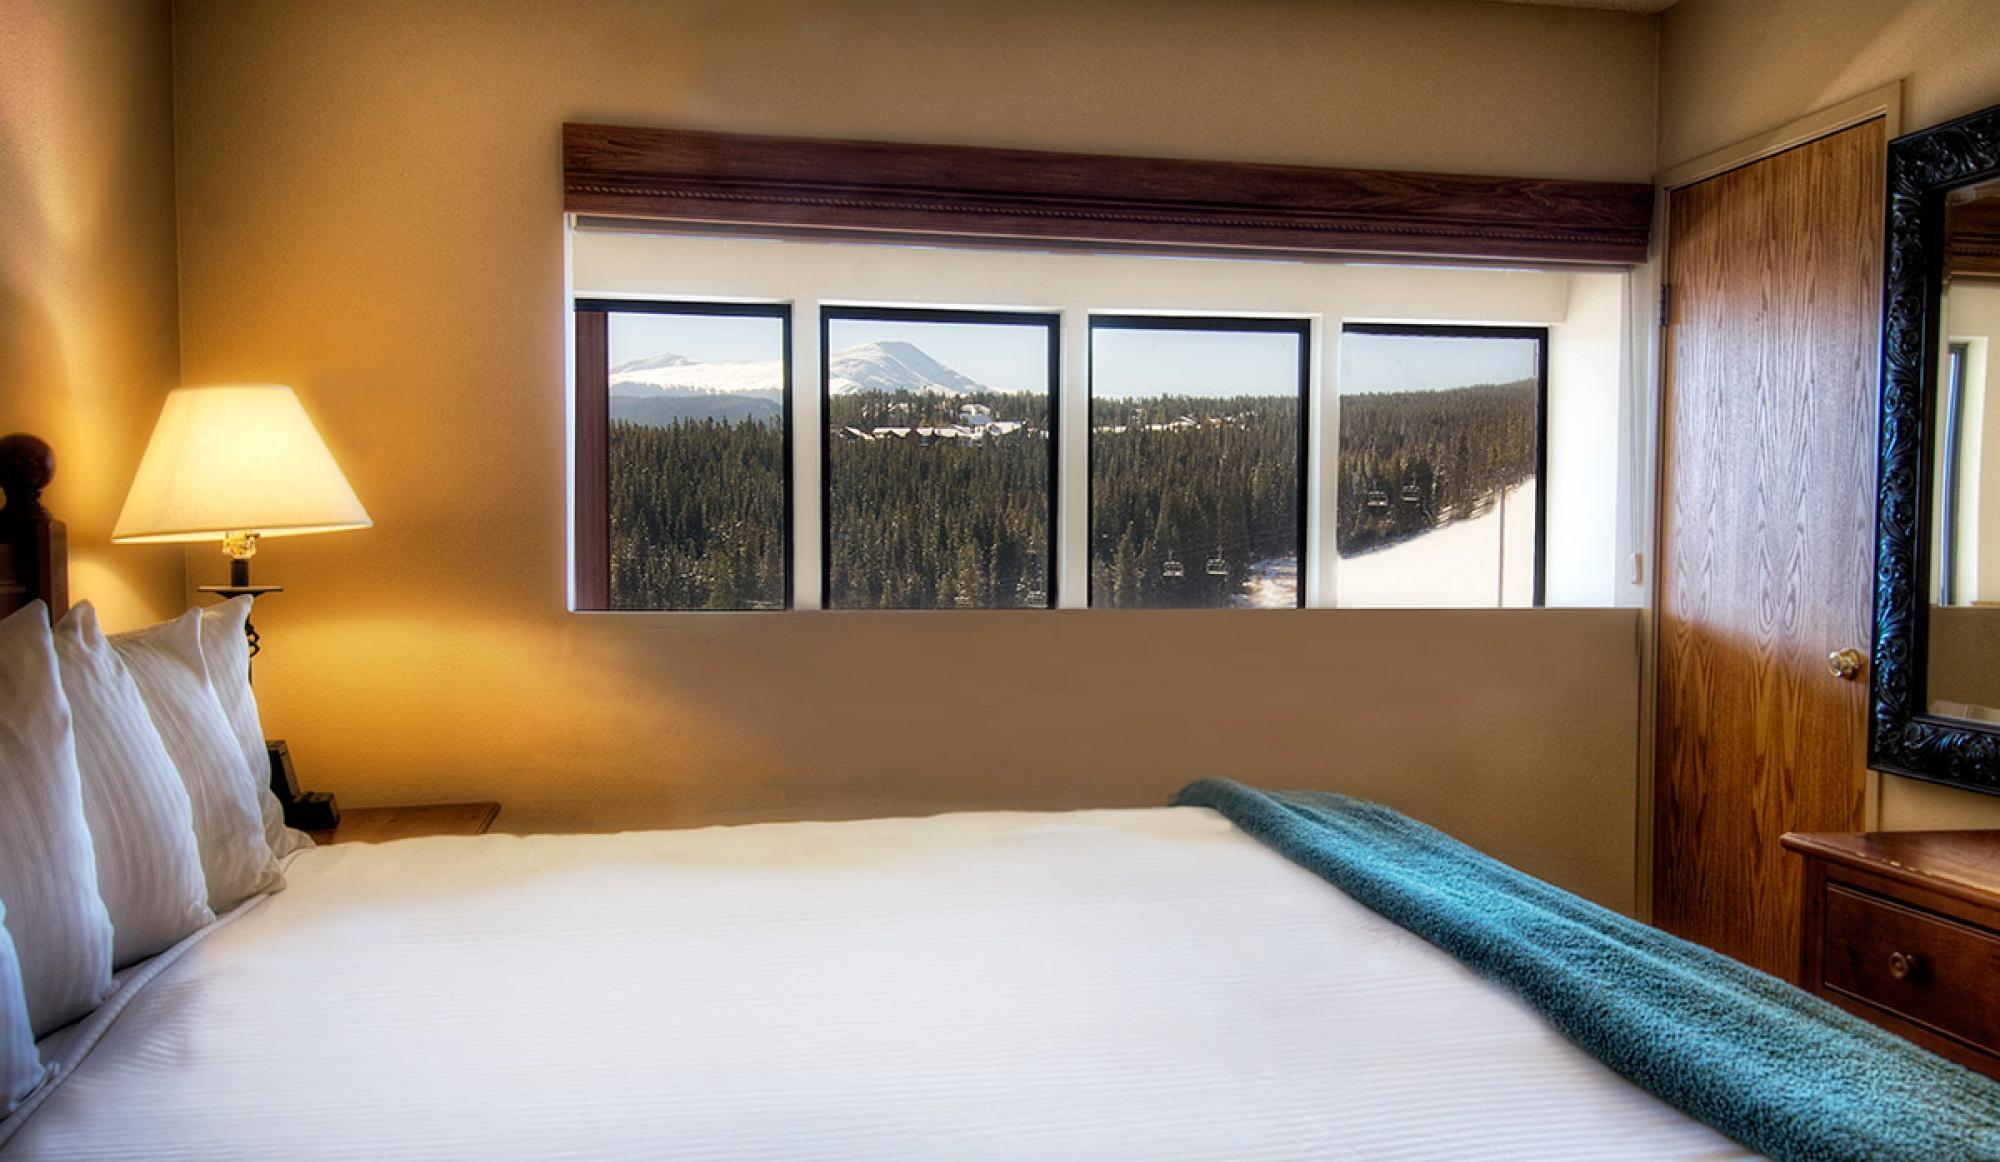 2 Bedroom Suite Master Bedroom at Beaver Run Resort in Breckenridge